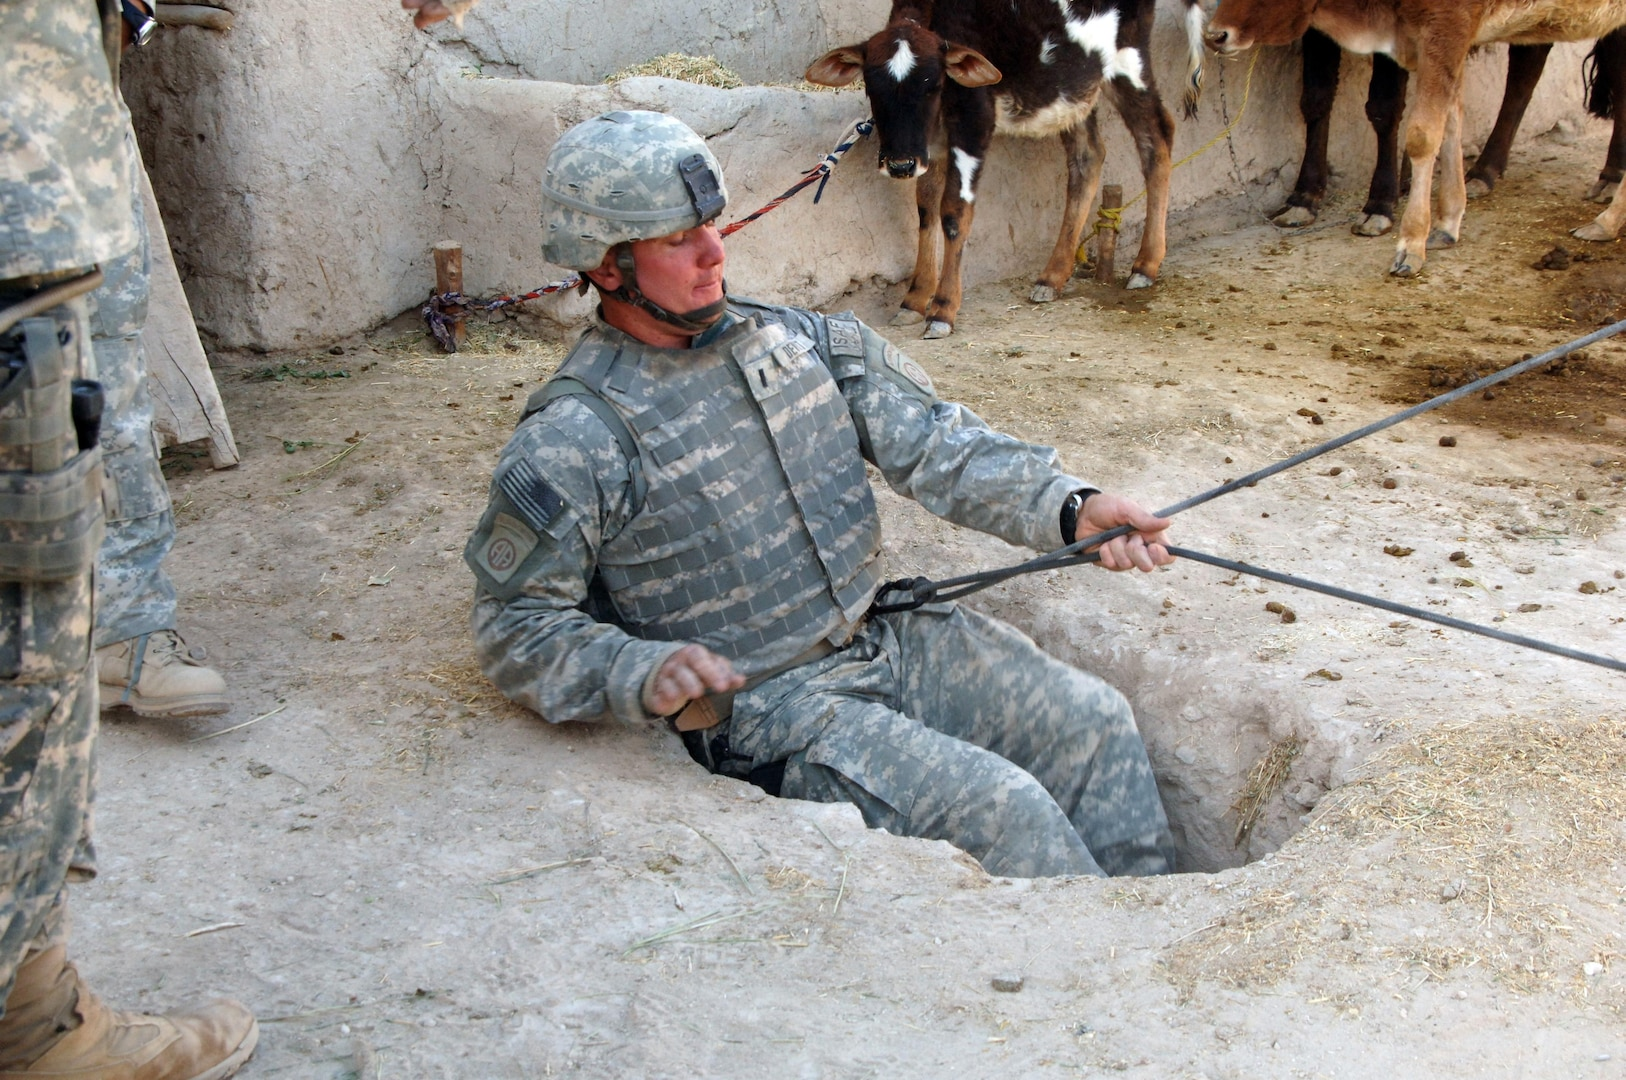 1st Lt. Scott Dewitt, of Company B, 2nd Battalion, 508th Parachute Infantry Regiment, rappels underground to search for weapons caches in the village of Bagi Khel, Afghanistan. (Photo Credit: Staff Sgt. Marcus J. Quarterman)